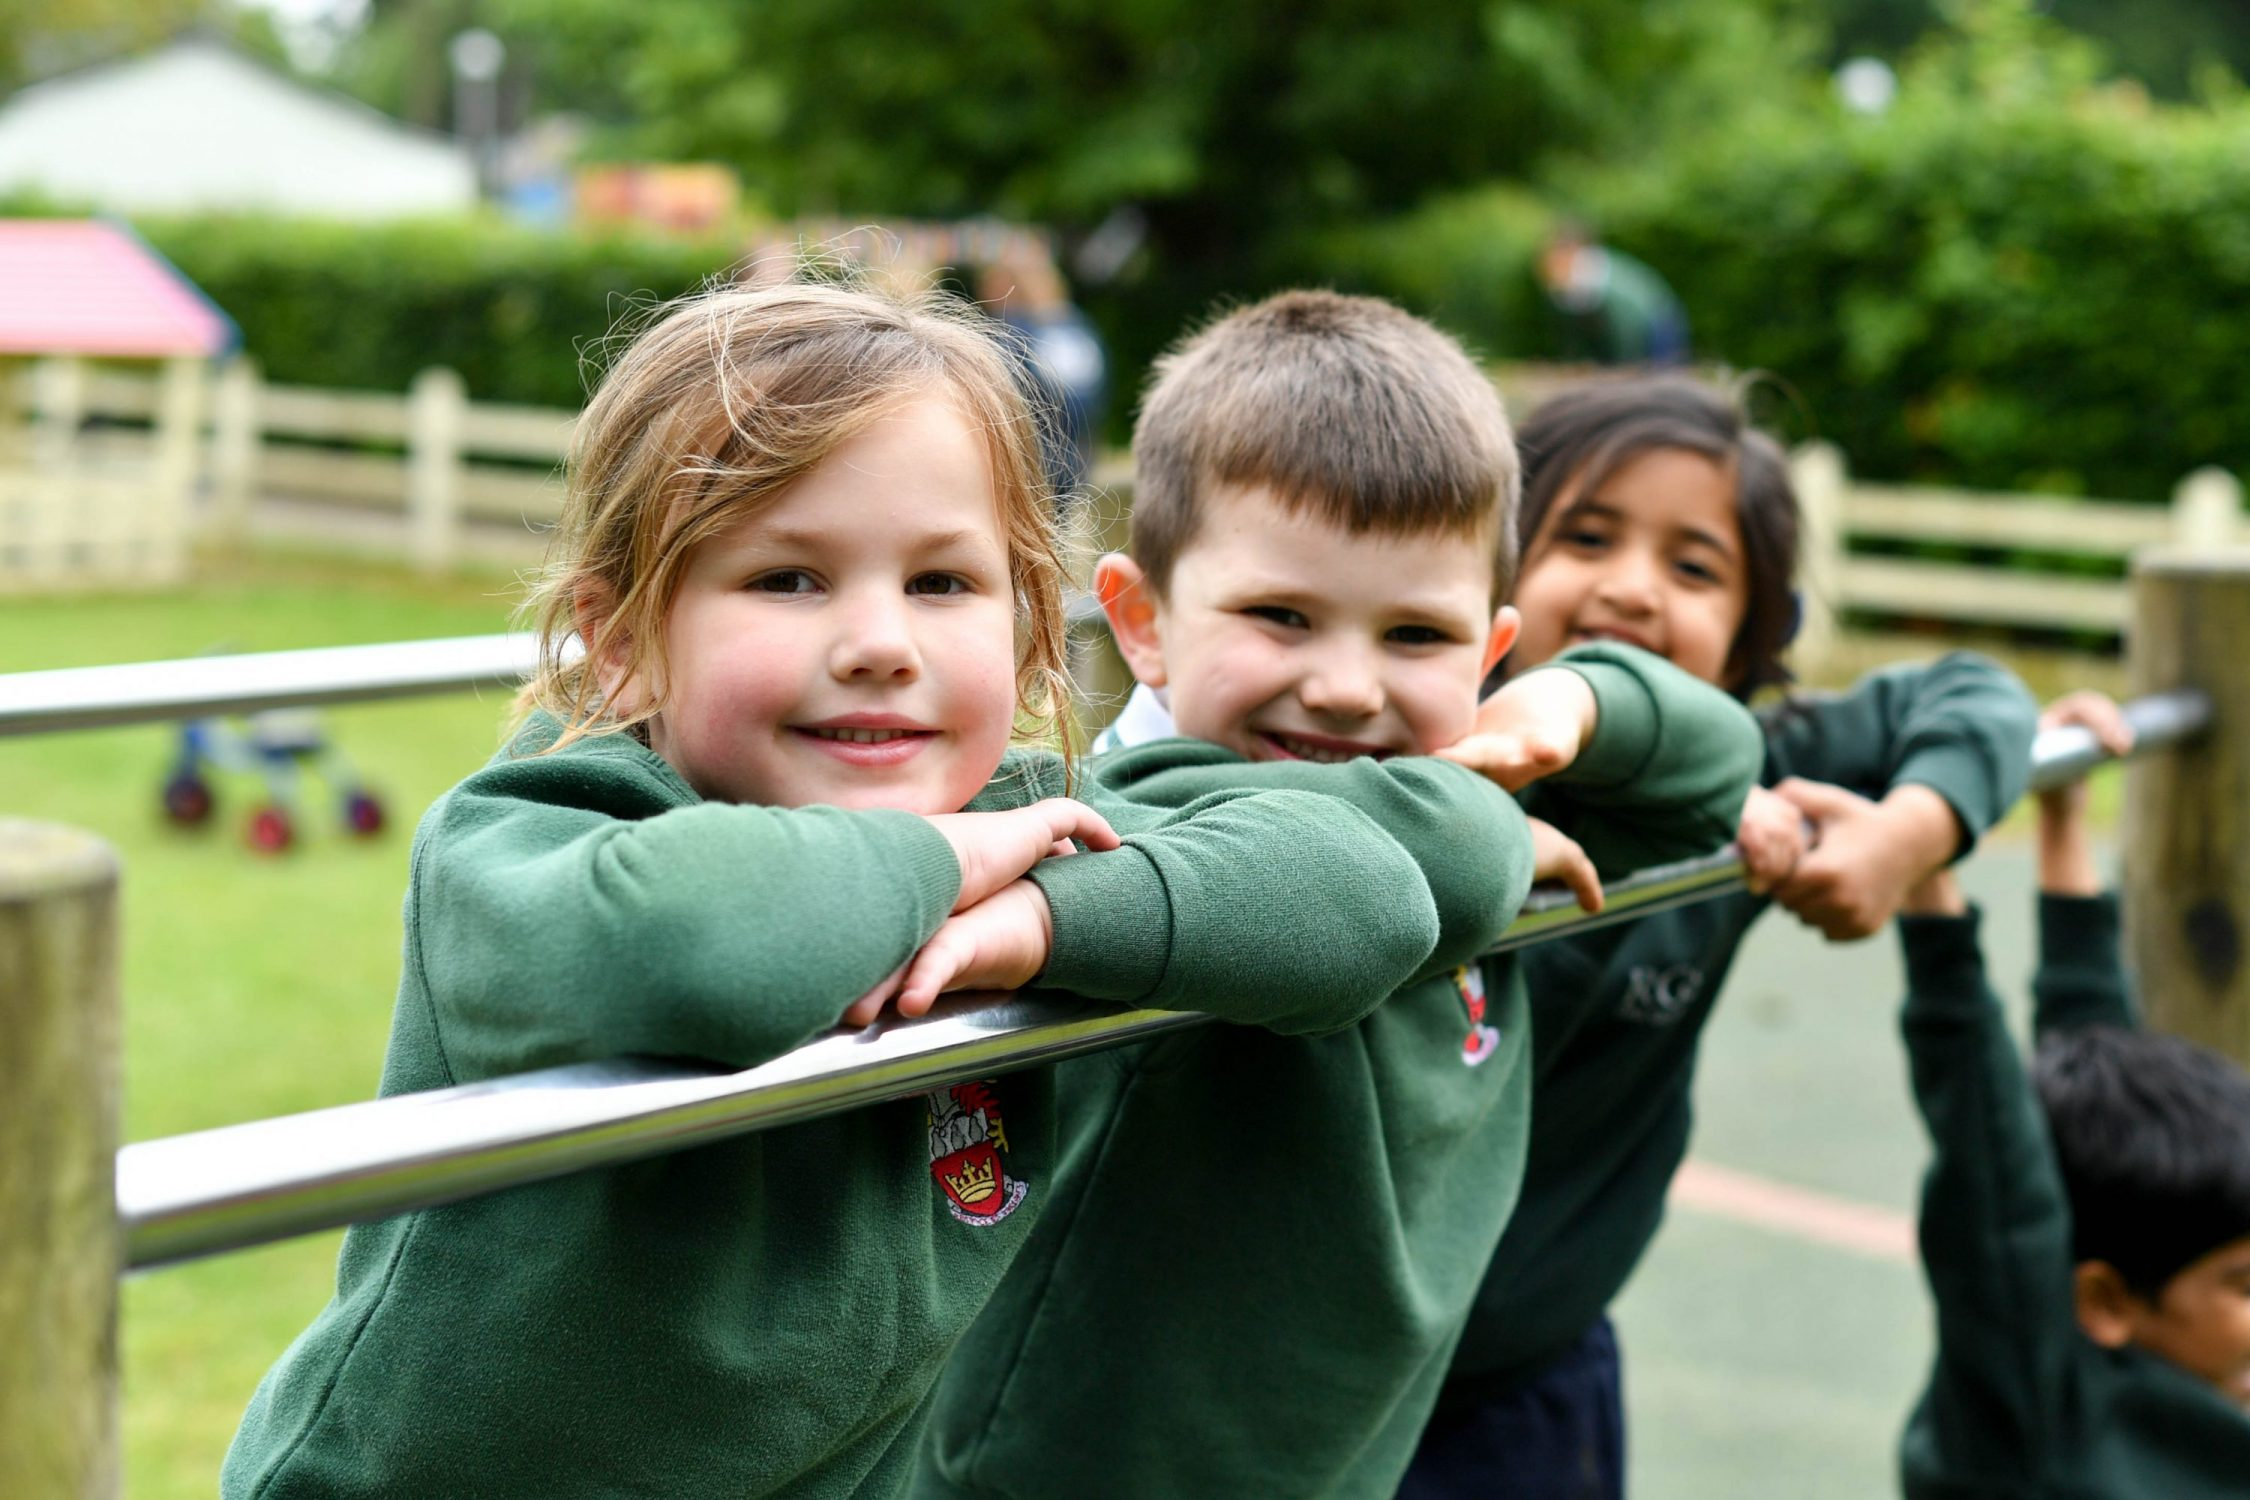 Reception pupils outdoors smiling in uniforms leaning on post